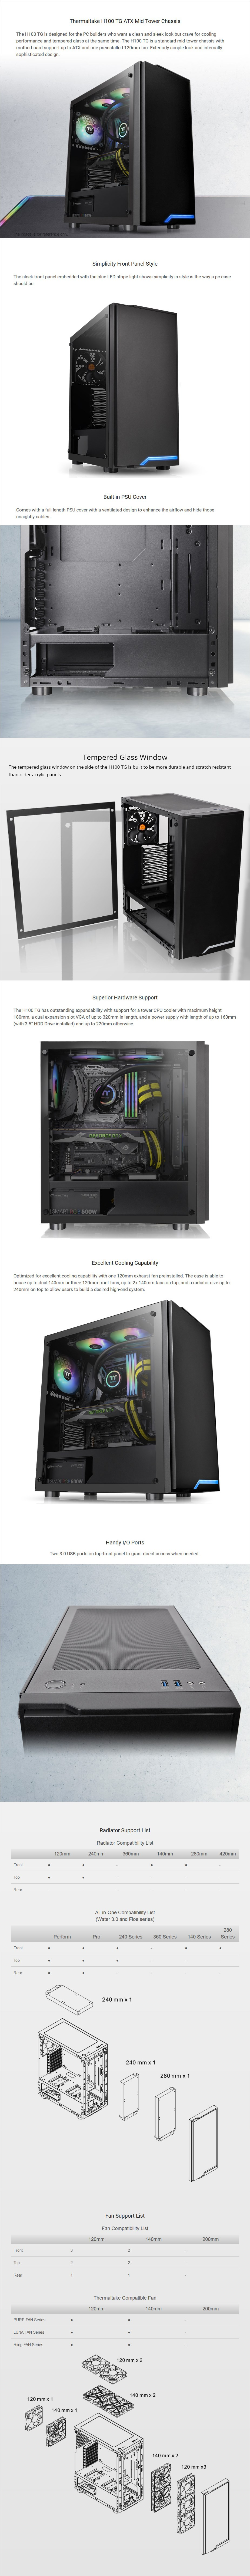 Thermaltake H100 Tempered Glass Mid-Tower ATX Case - Black - Overview 1